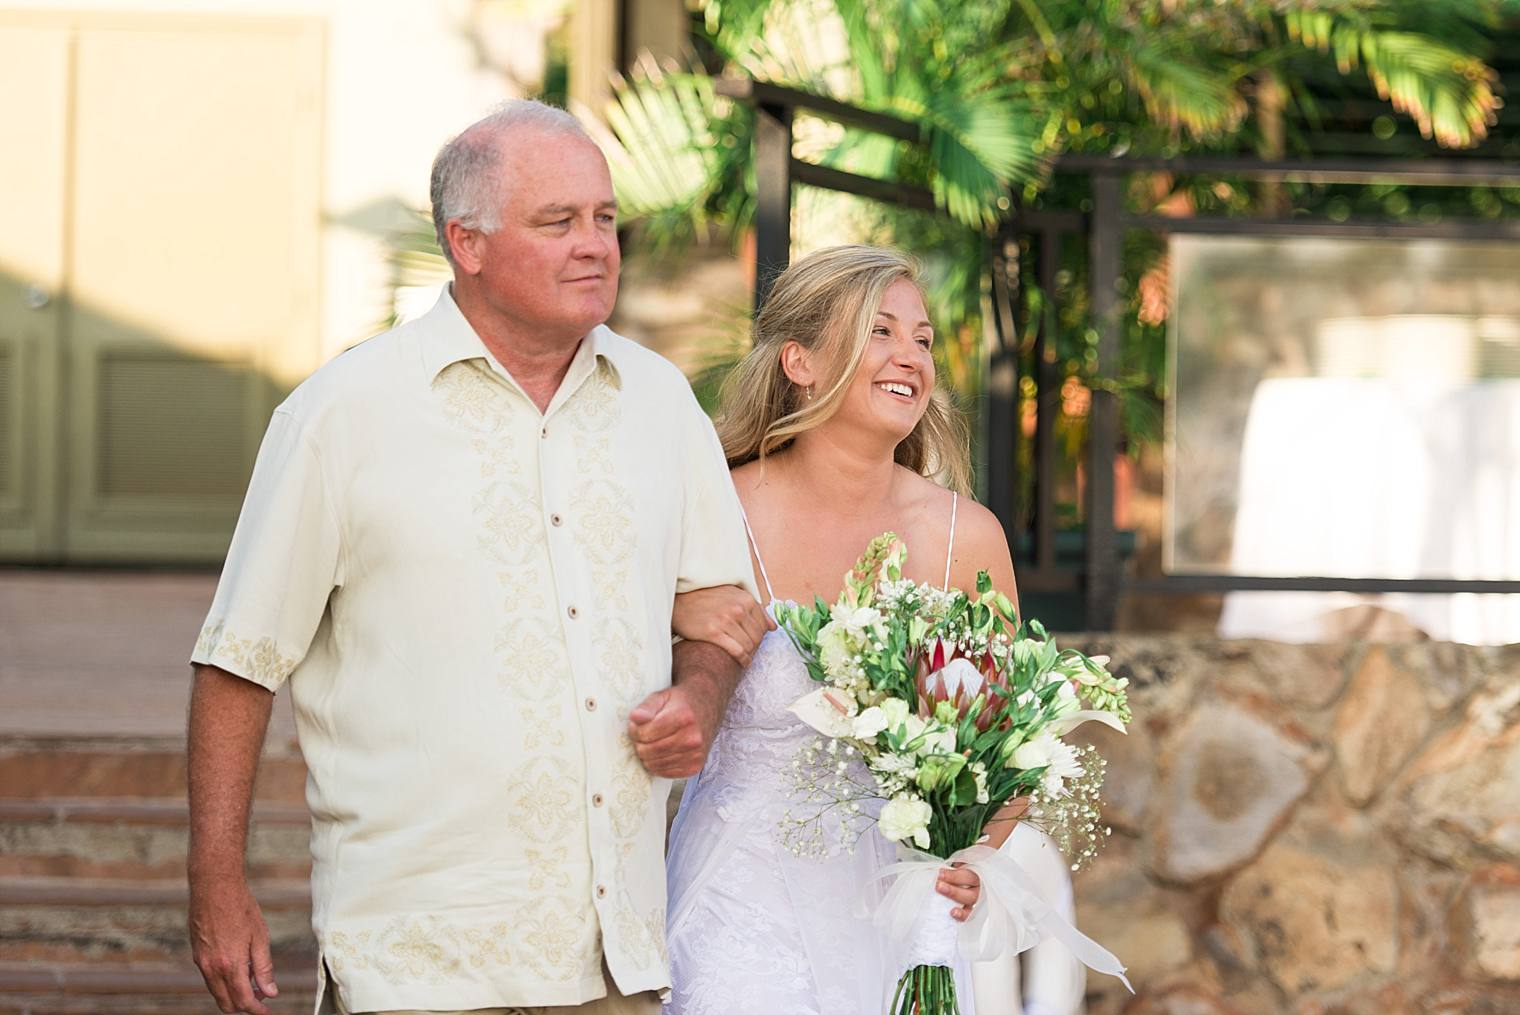 Destination Wedding at Sea House Napili - Maui Wedding Photographer_0017